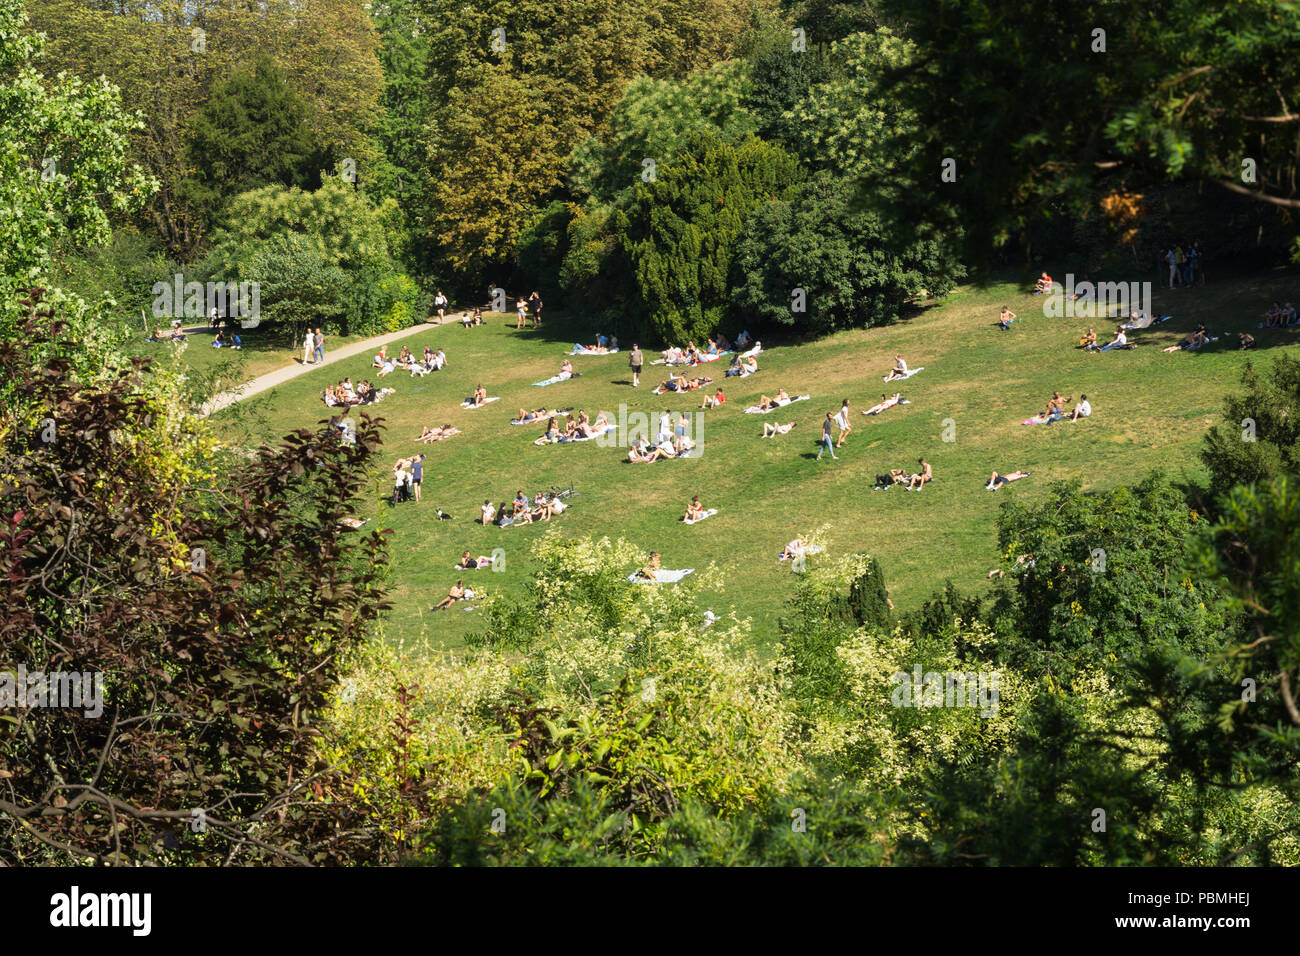 Paris park - Top view of people enjoying hot summer afternoon on the slope of Parc des Buttes Chaumont in Paris, France. - Stock Image